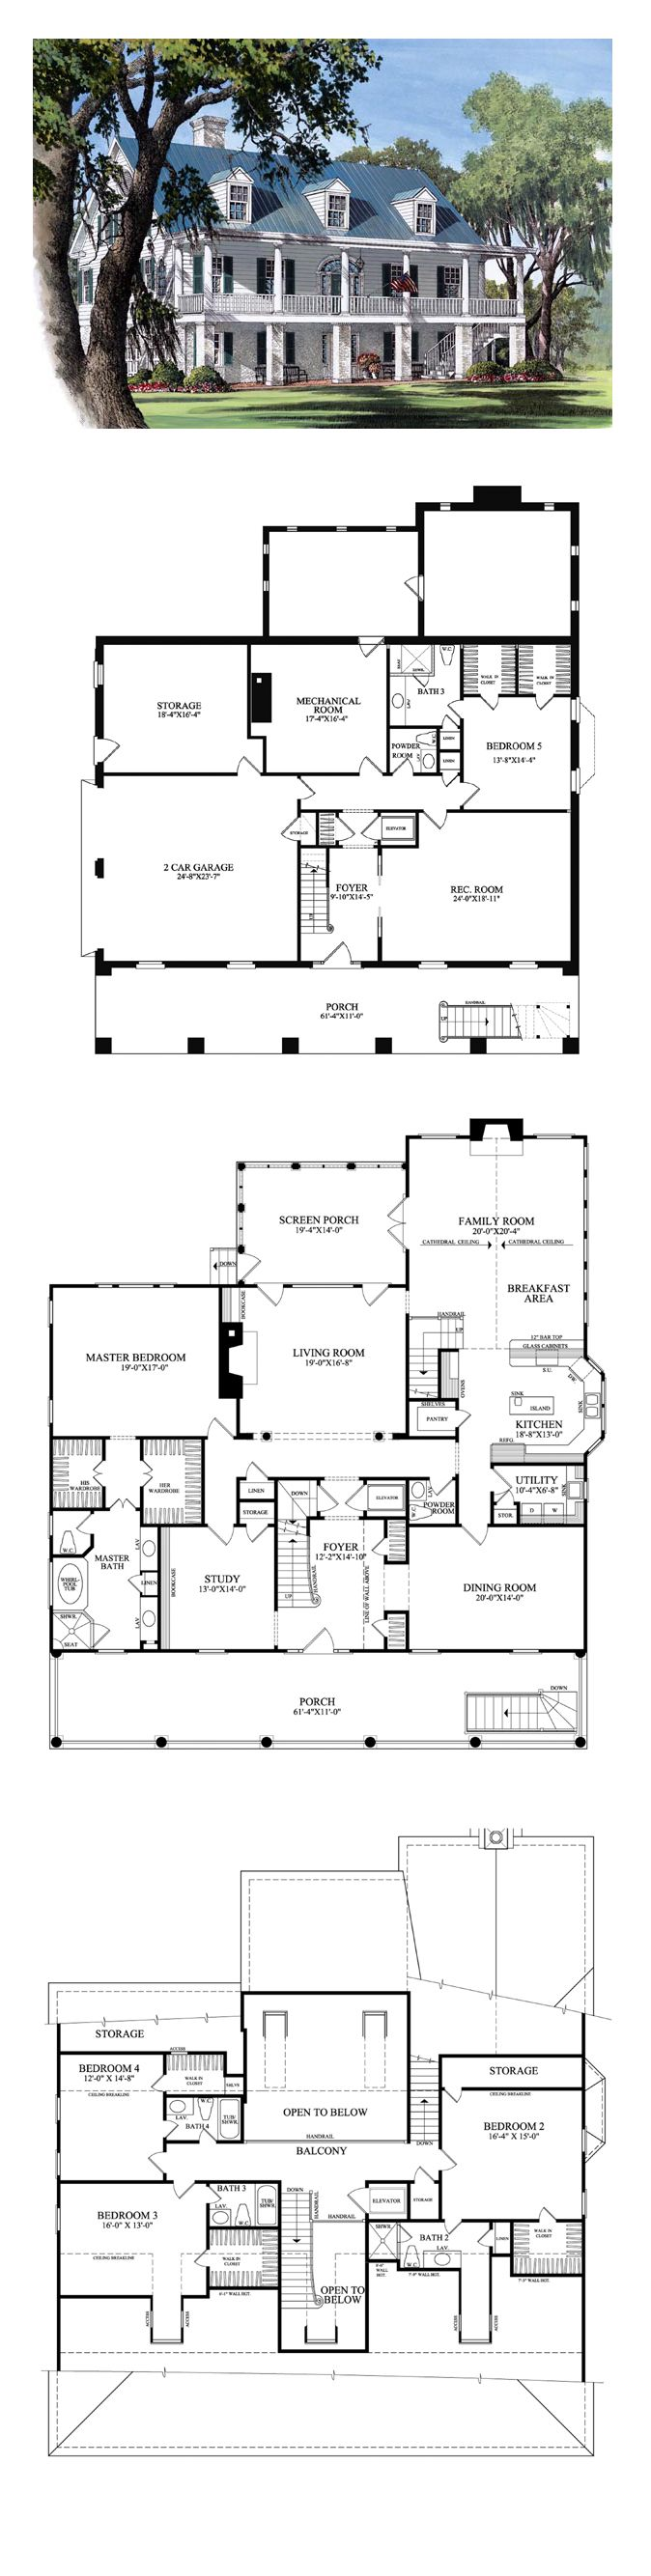 5 bedroom 3 bathroom house plans - Best 25 Basement House Plans Ideas Only On Pinterest House Layouts Craftsman Floor Plans And Basement Floor Plans